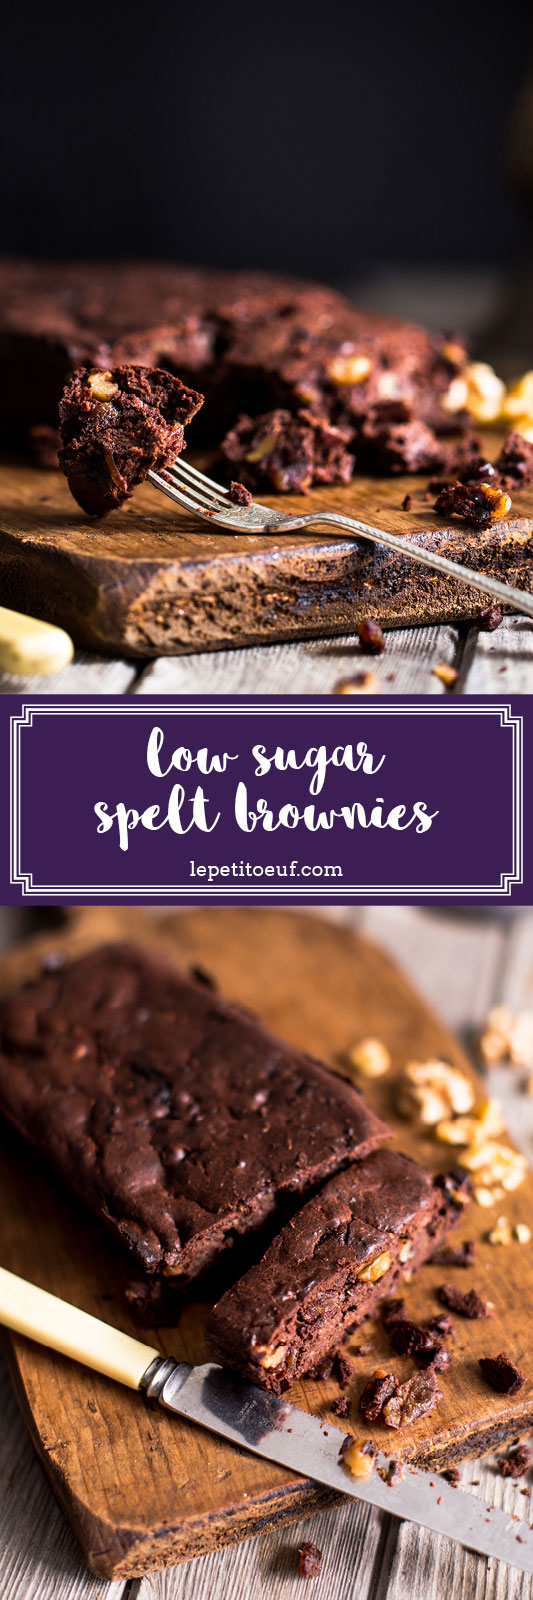 Low sugar dark chocolate spelt brownies made using dates to sweeten, providing a delicious rich brownie recipe with only a fraction of the sugar of most brownie recipes. These delicious brownies make a great treat if you're cutting out refined sugar or if you simply want to reduce your sugar intake without foregoing some delicious baked treats! Time to get baking!